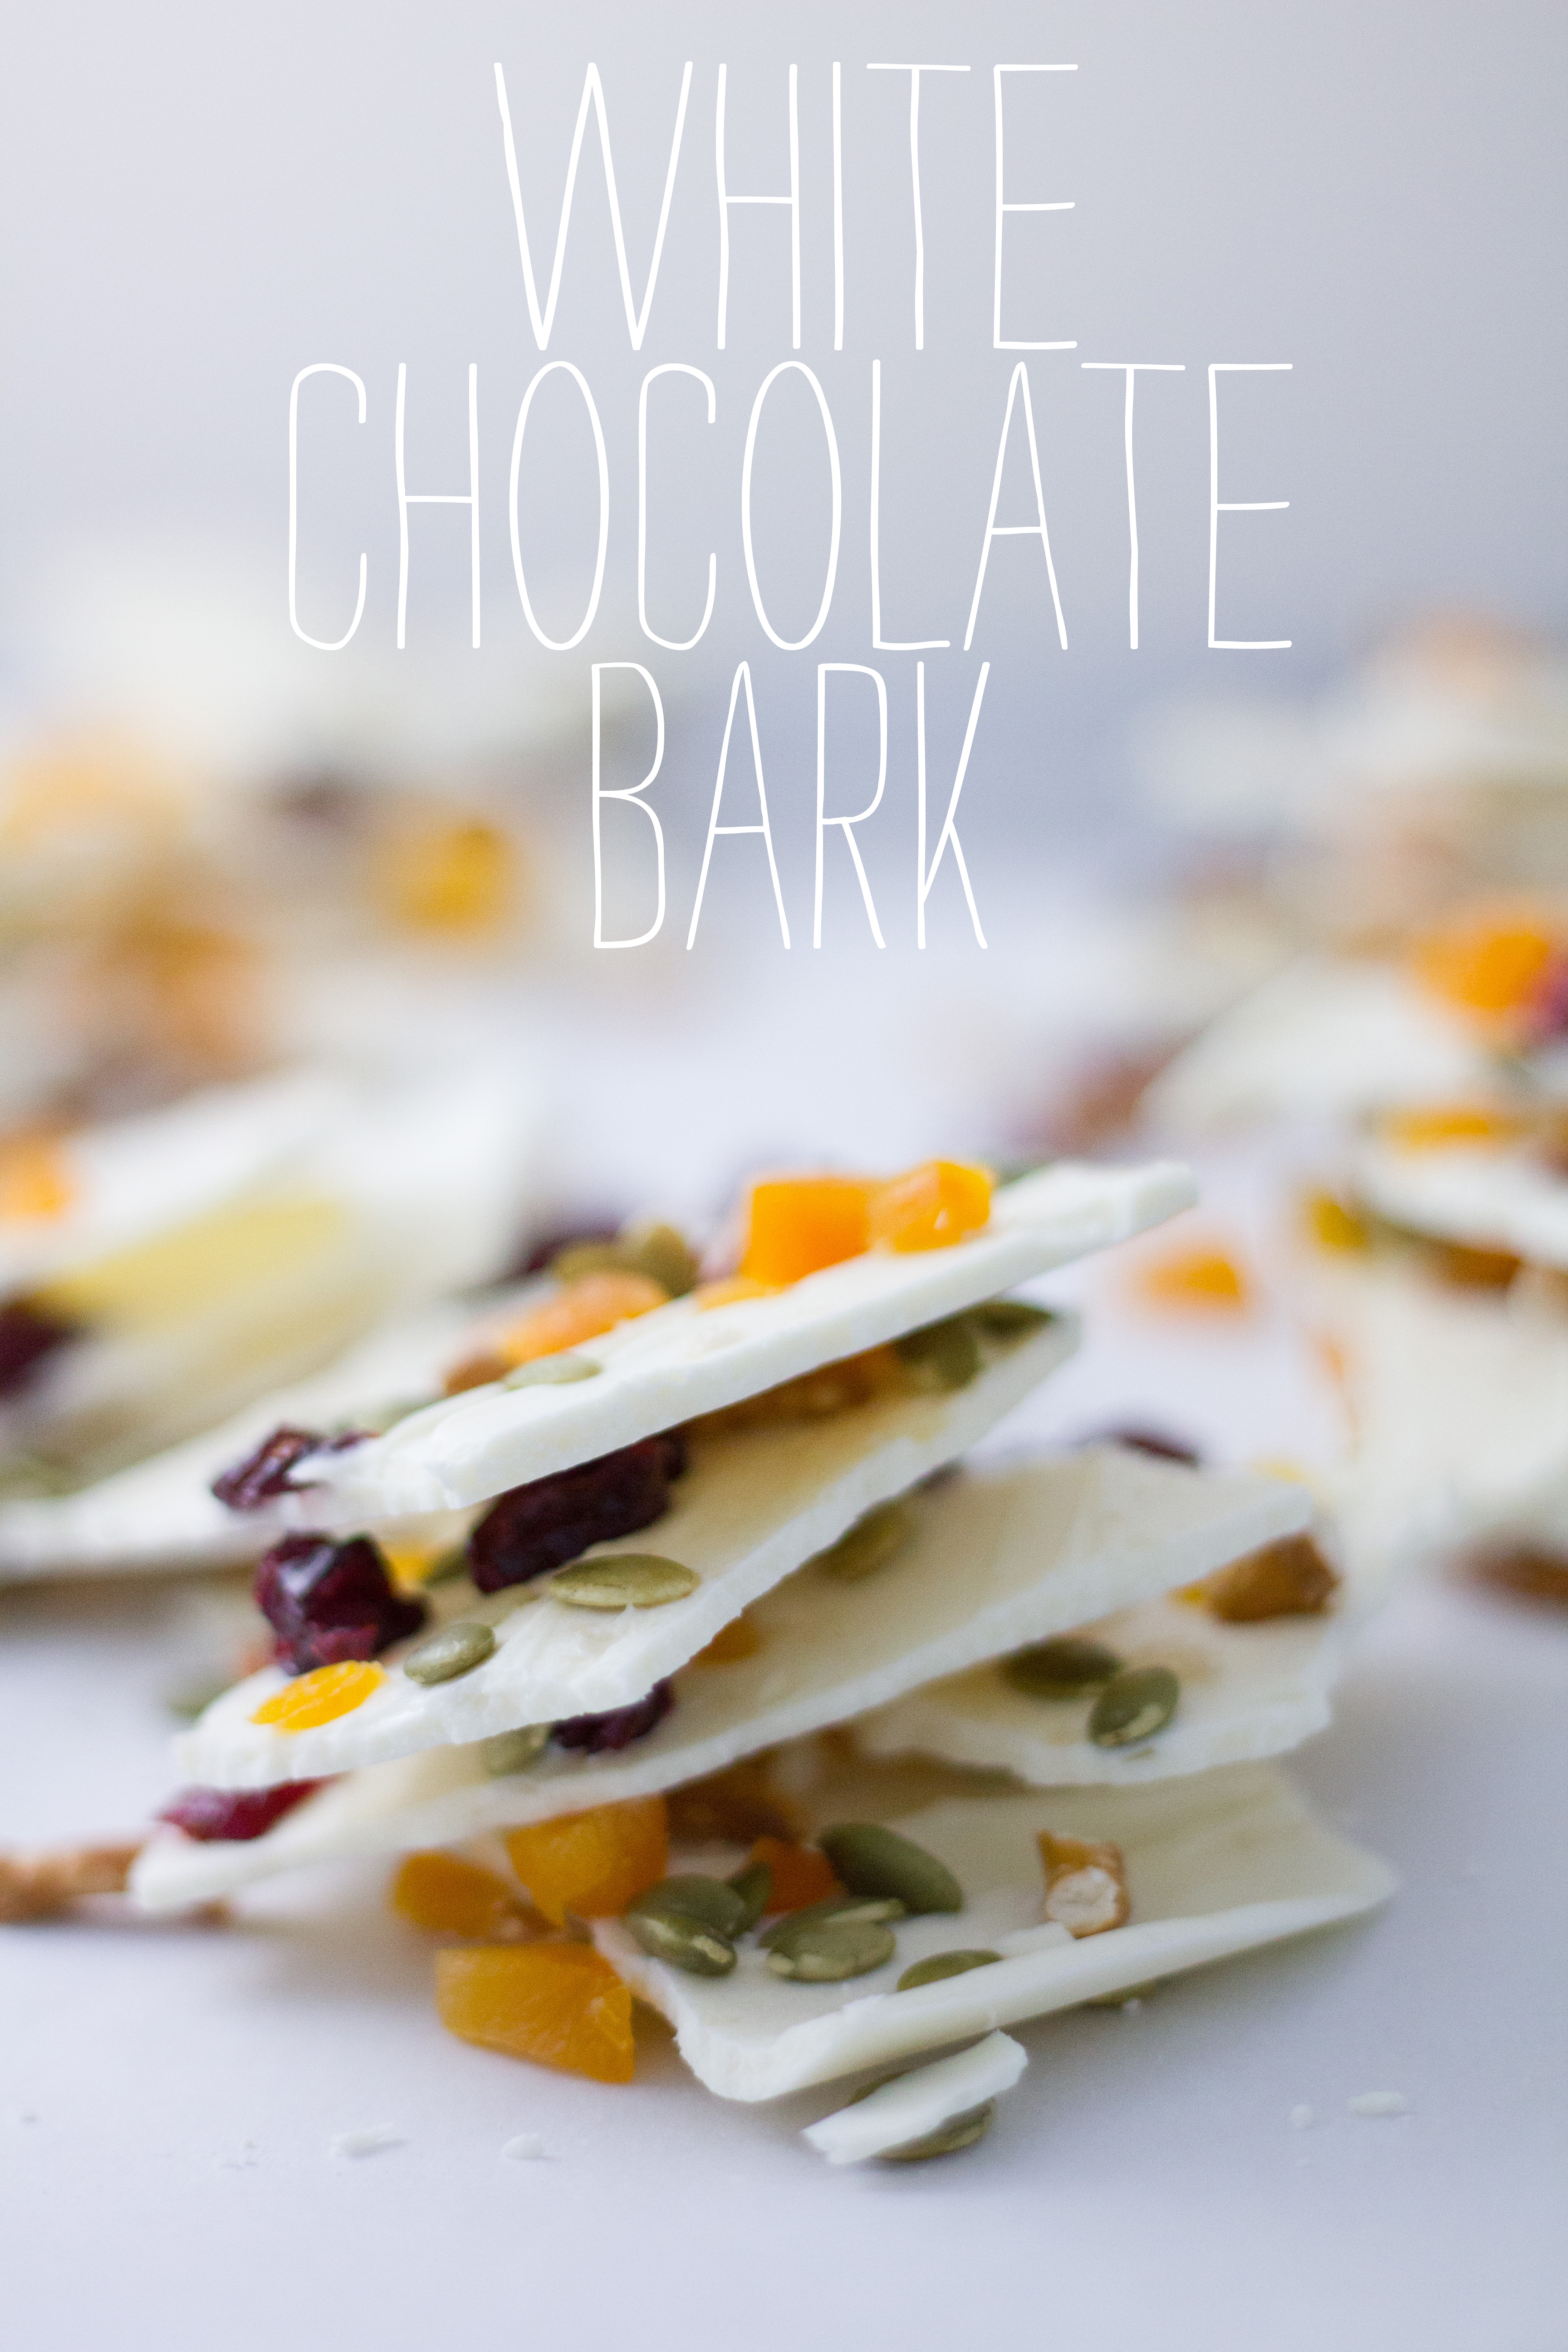 white chocolate bark (2 of 7) text